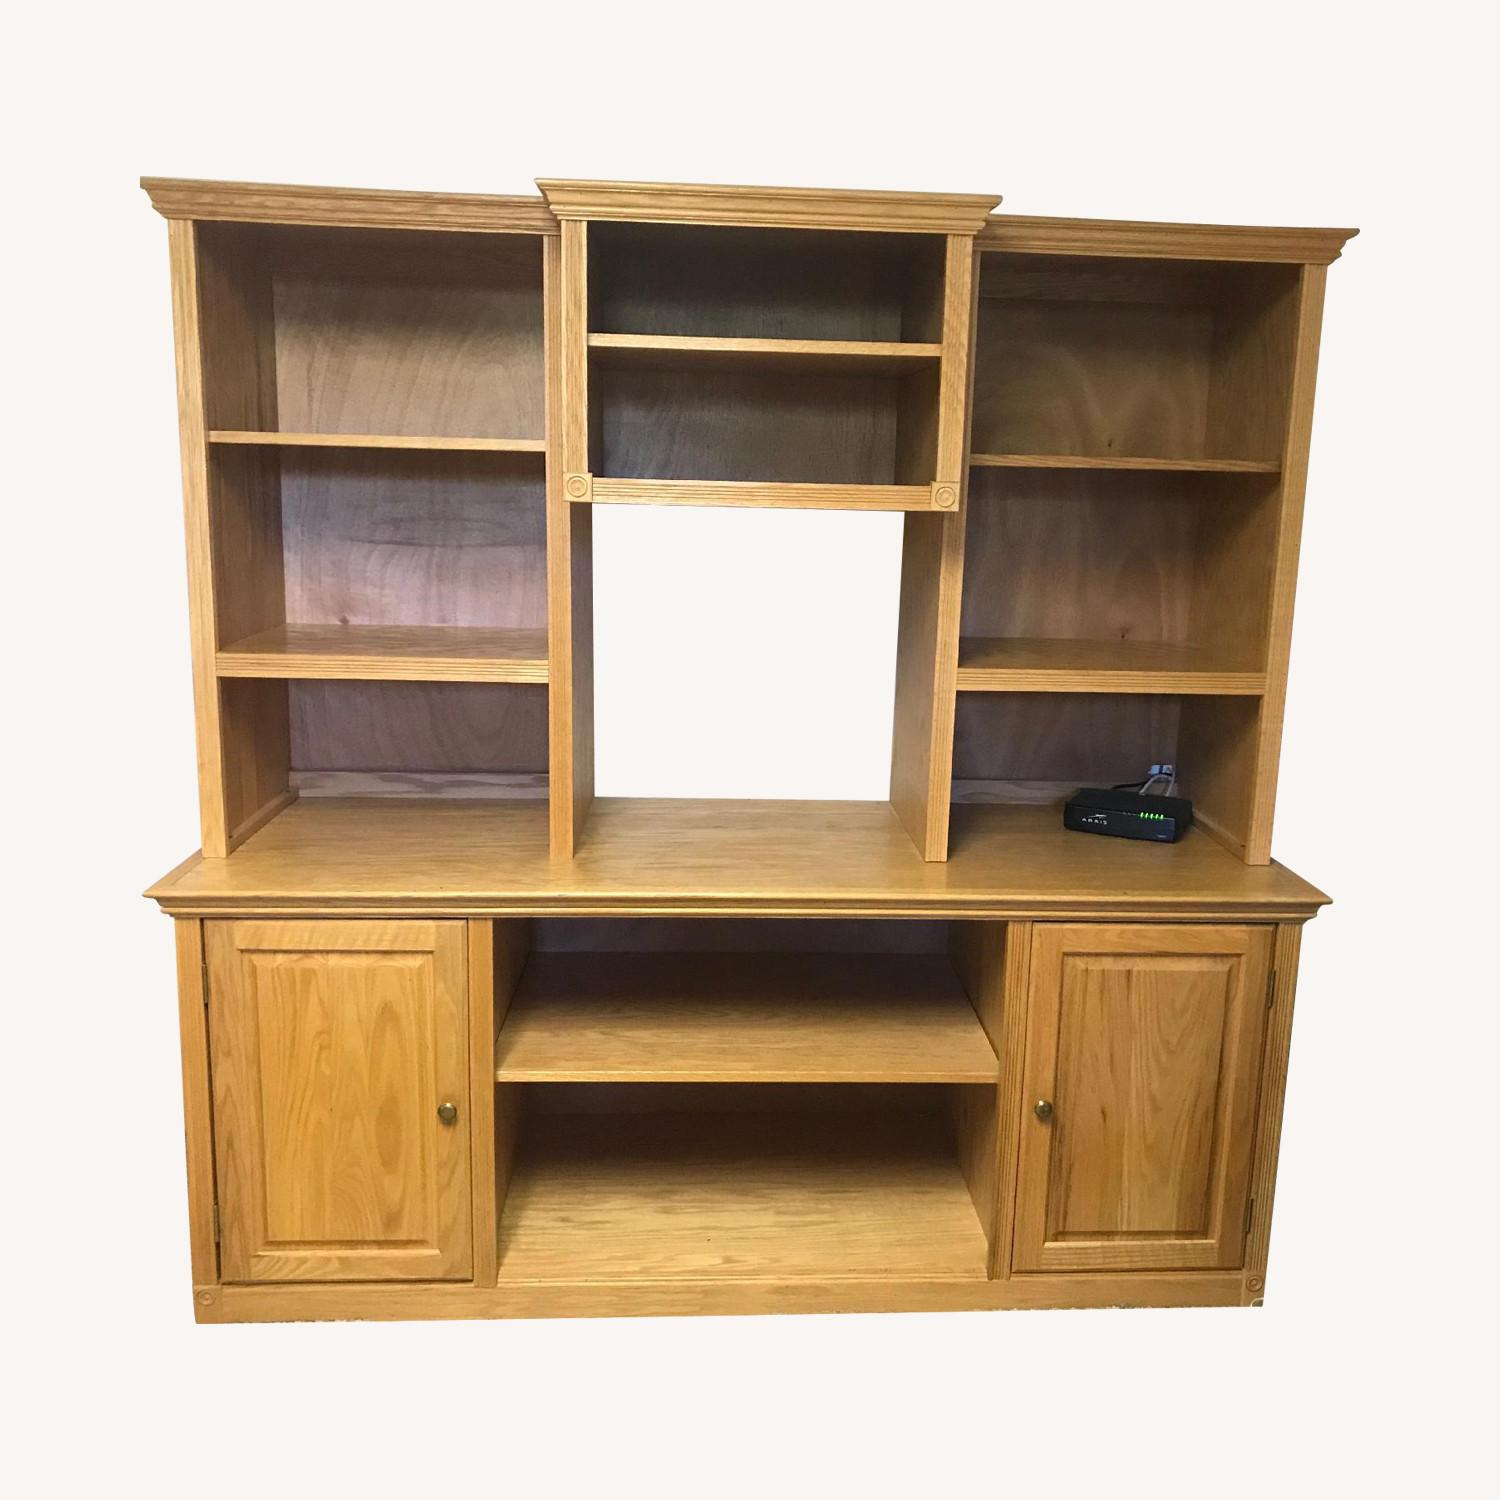 3-Piece Wood Bookcase in Oak Finish - image-0